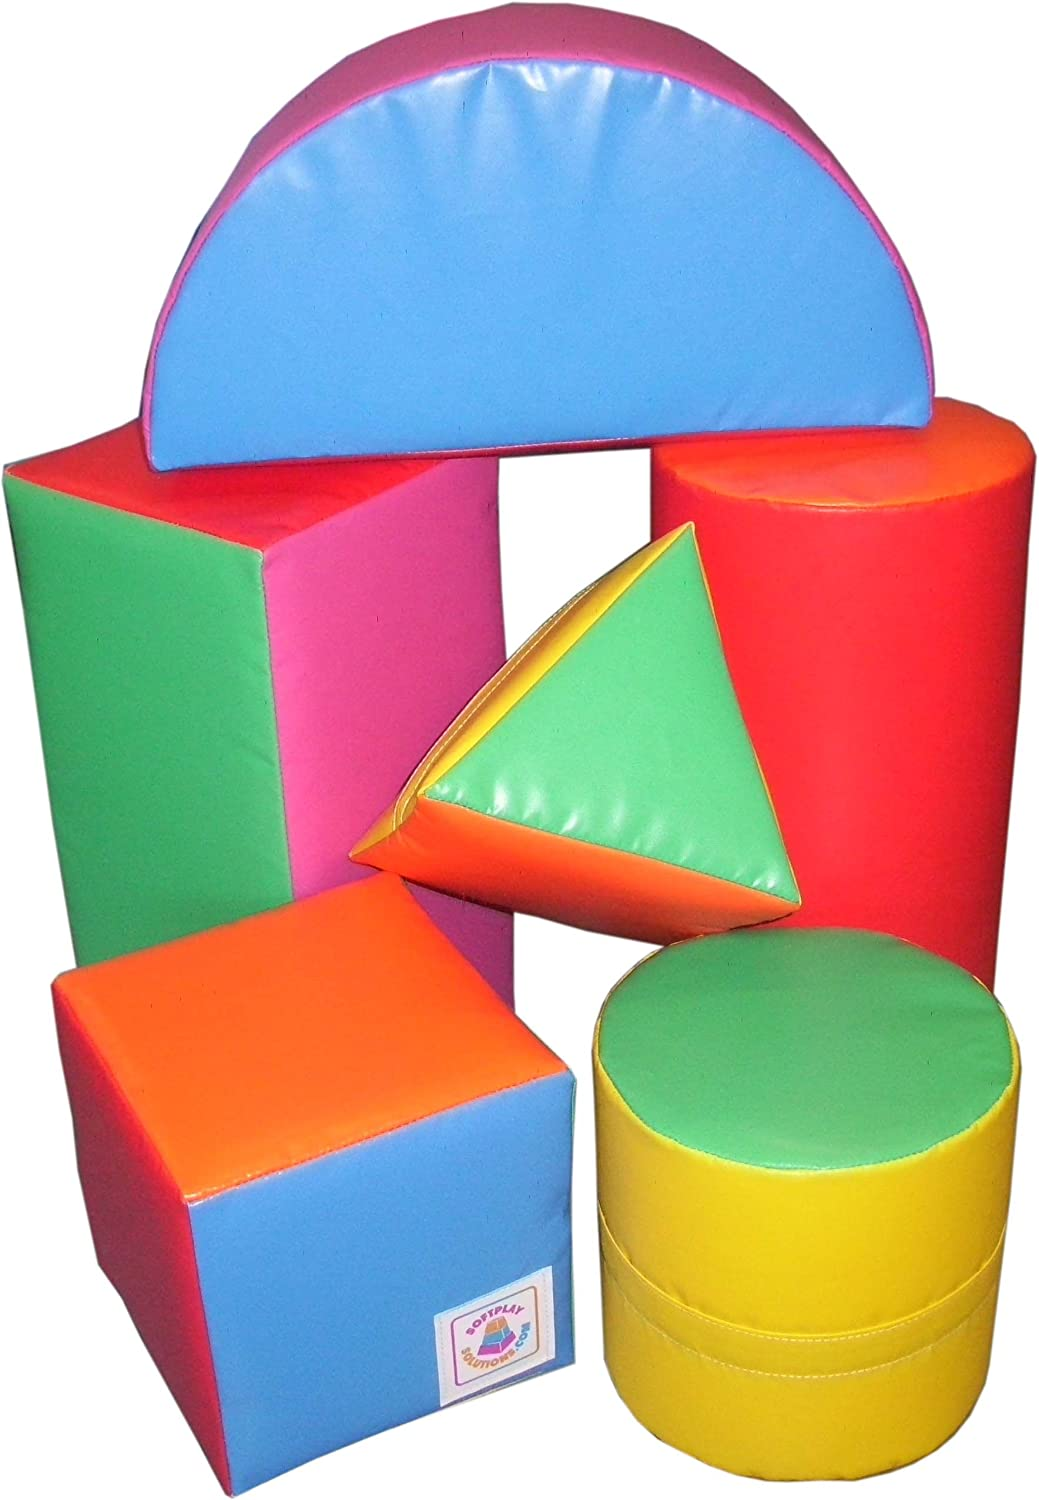 Soft Play Set of 6 shapes (set 3)   610gsm PVC   High Density Foam   Toddlers   Nurseries   Schools   Early Development